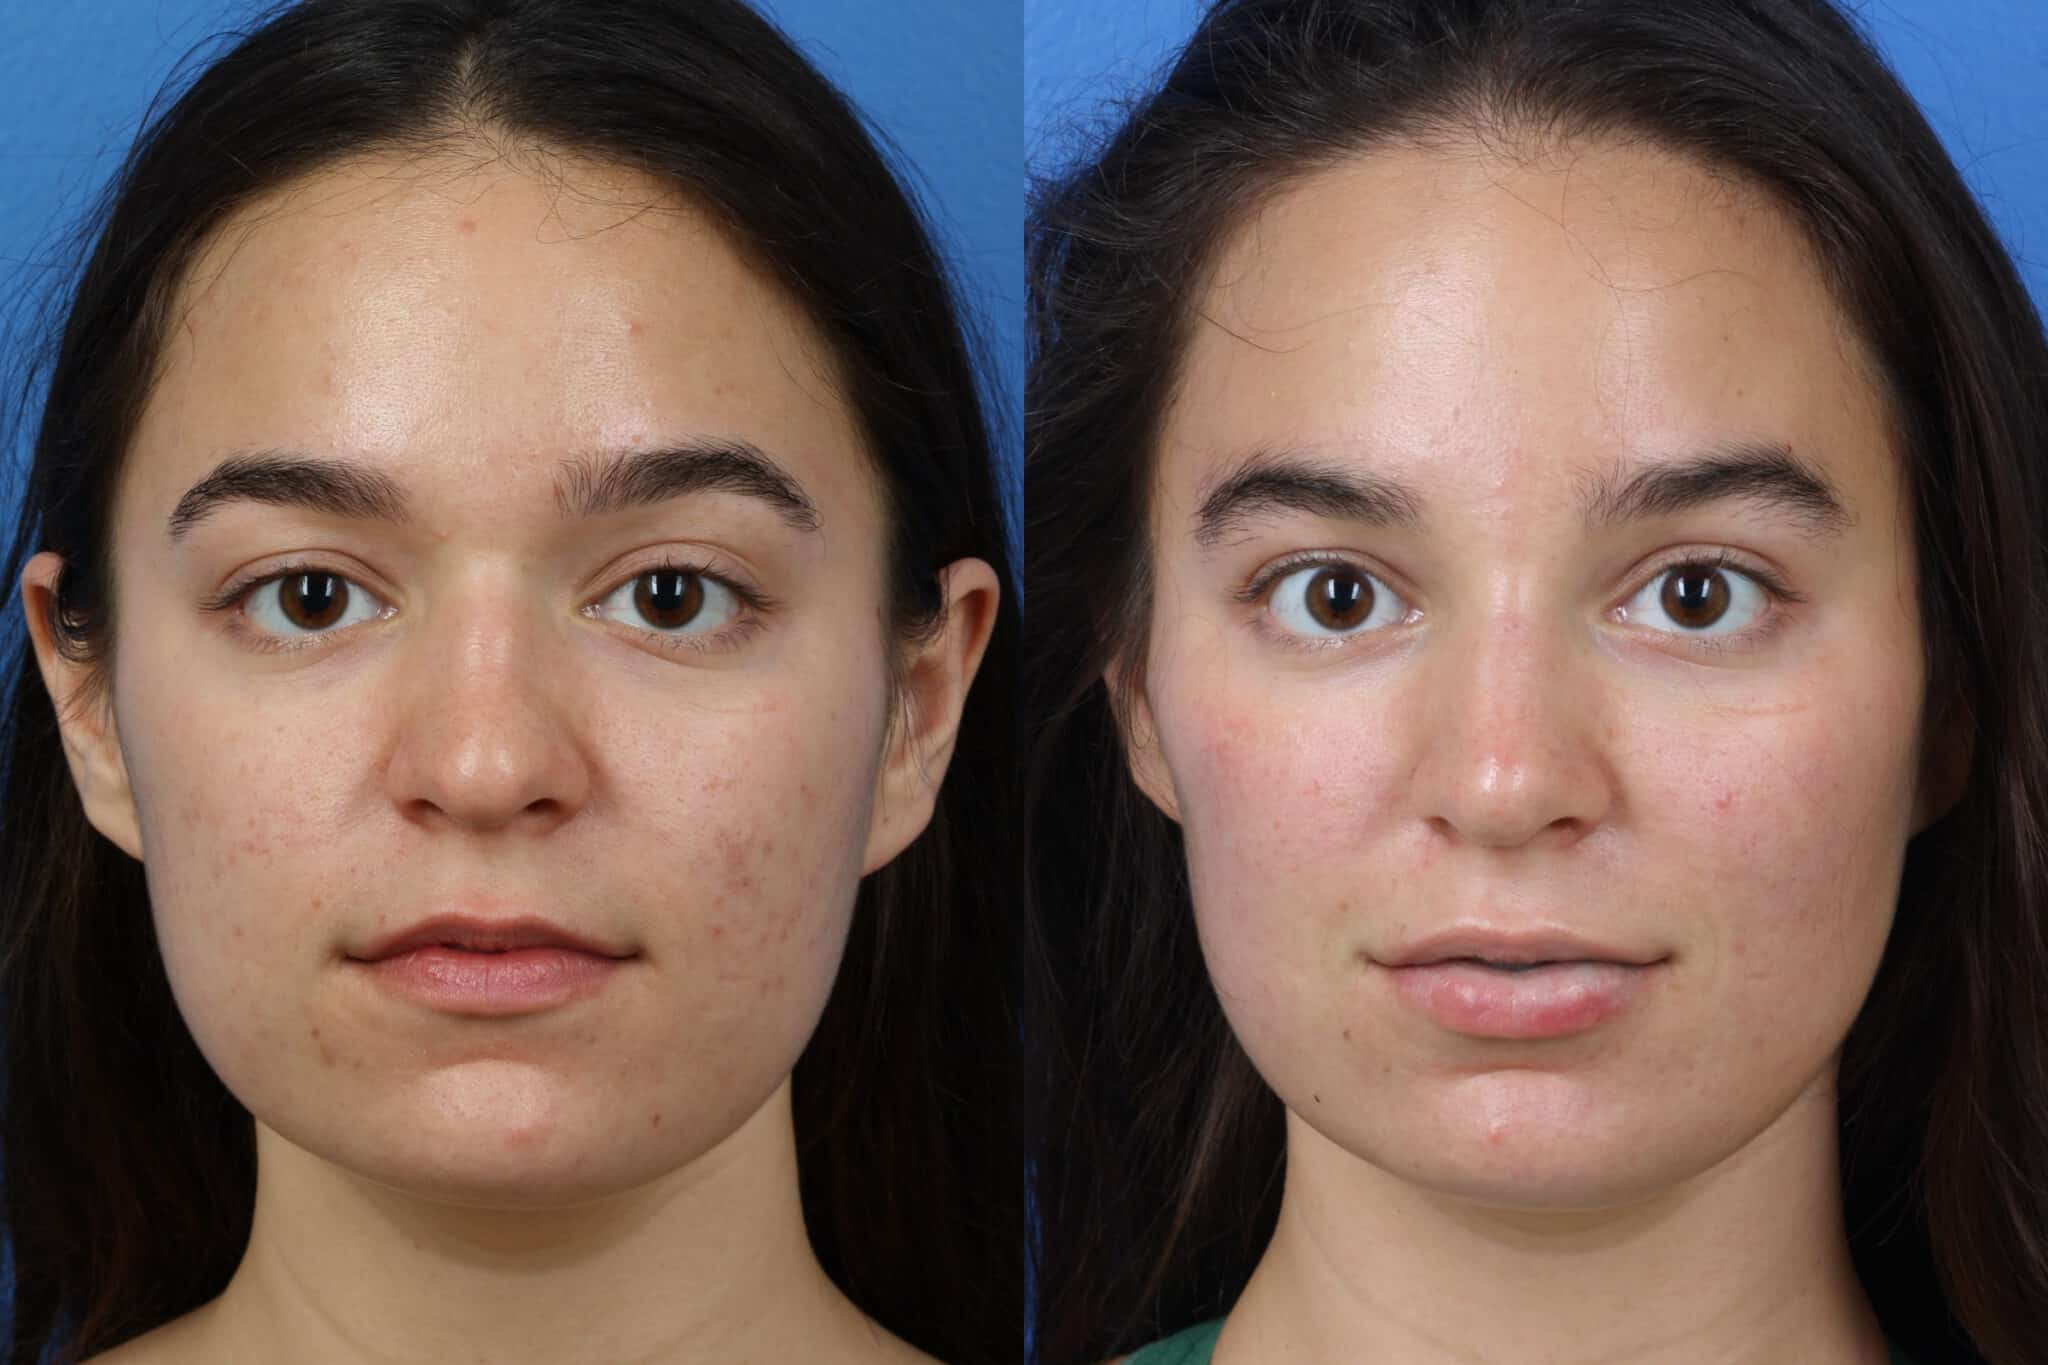 Rhinoplasty to Enhance Nose Shape and Size by Dr. Miller